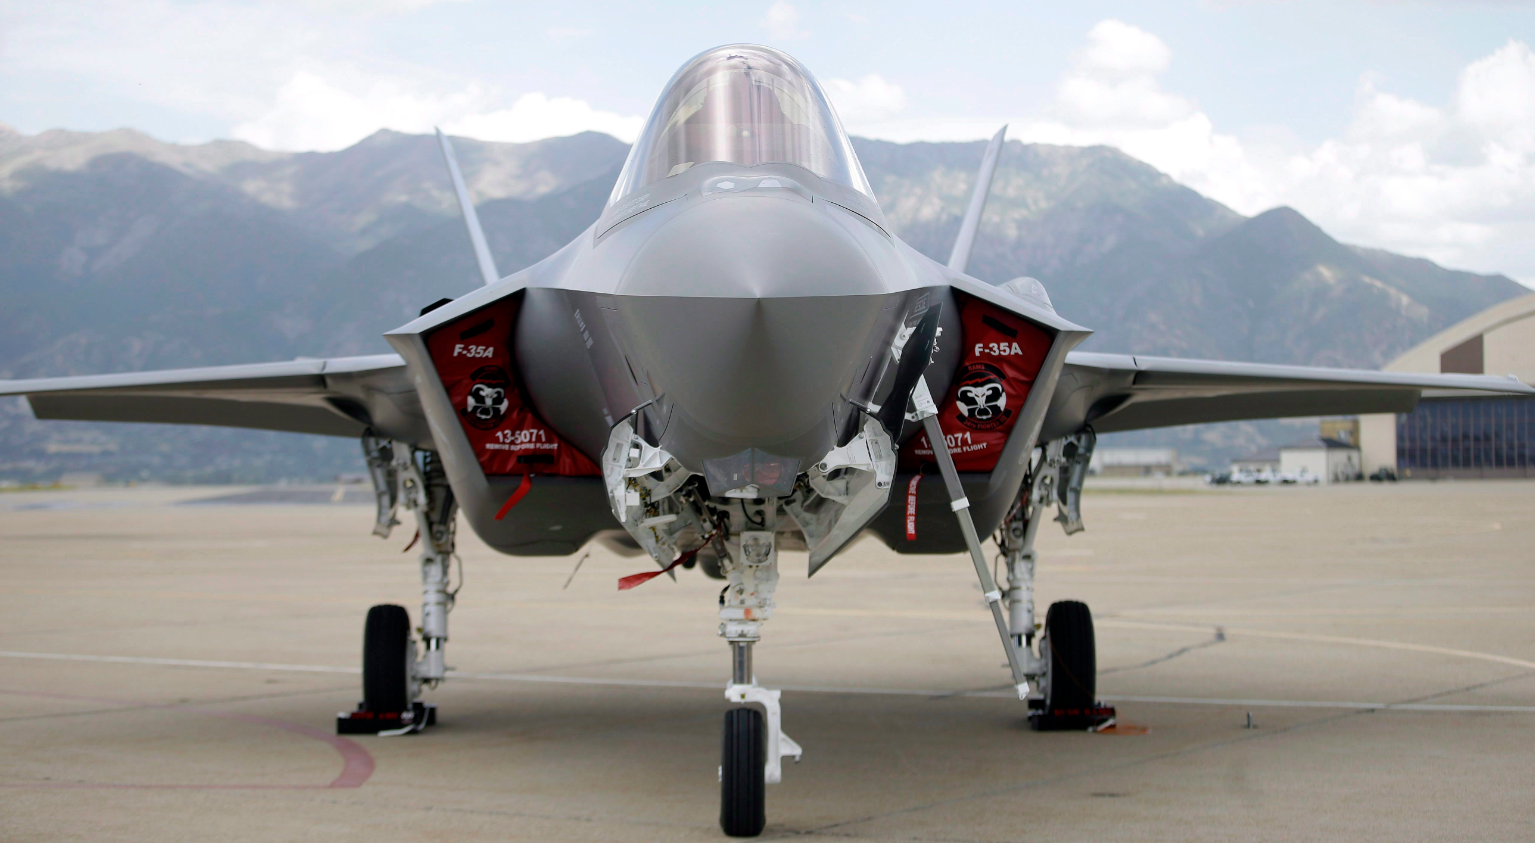 An F-35 jet sits on the tarmac at its new operational base Wednesday, Sept. 2, 2015, at Hill Air Force Base, in northern Utah in the United States. Norway's recent procurement of F-35s is the most costly purchase in the history of the Norwegian armed forces. (Rick Bowmer/AP)